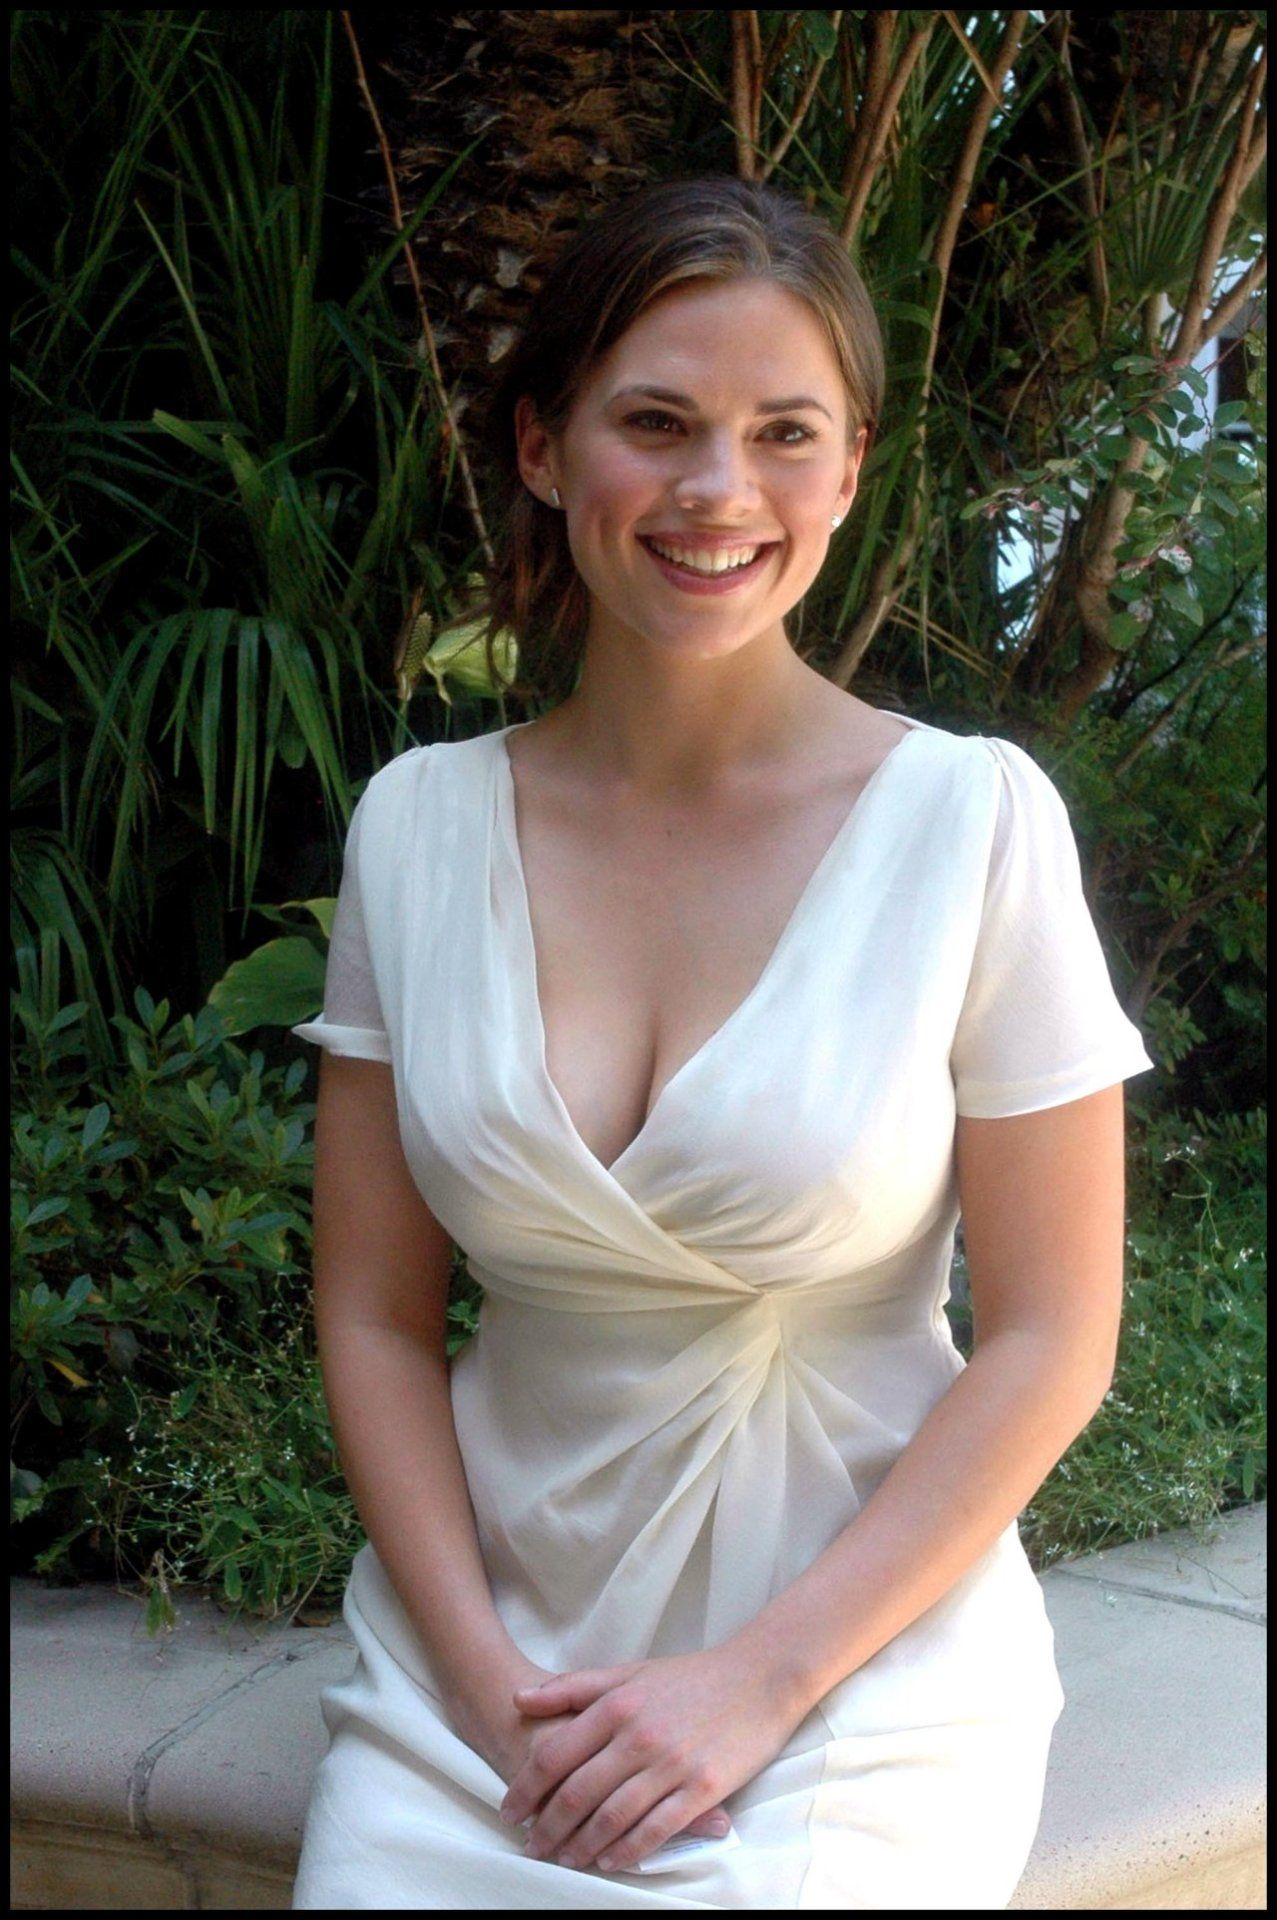 TheFappening Hayley Atwell naked (18 foto and video), Tits, Cleavage, Feet, bra 2015